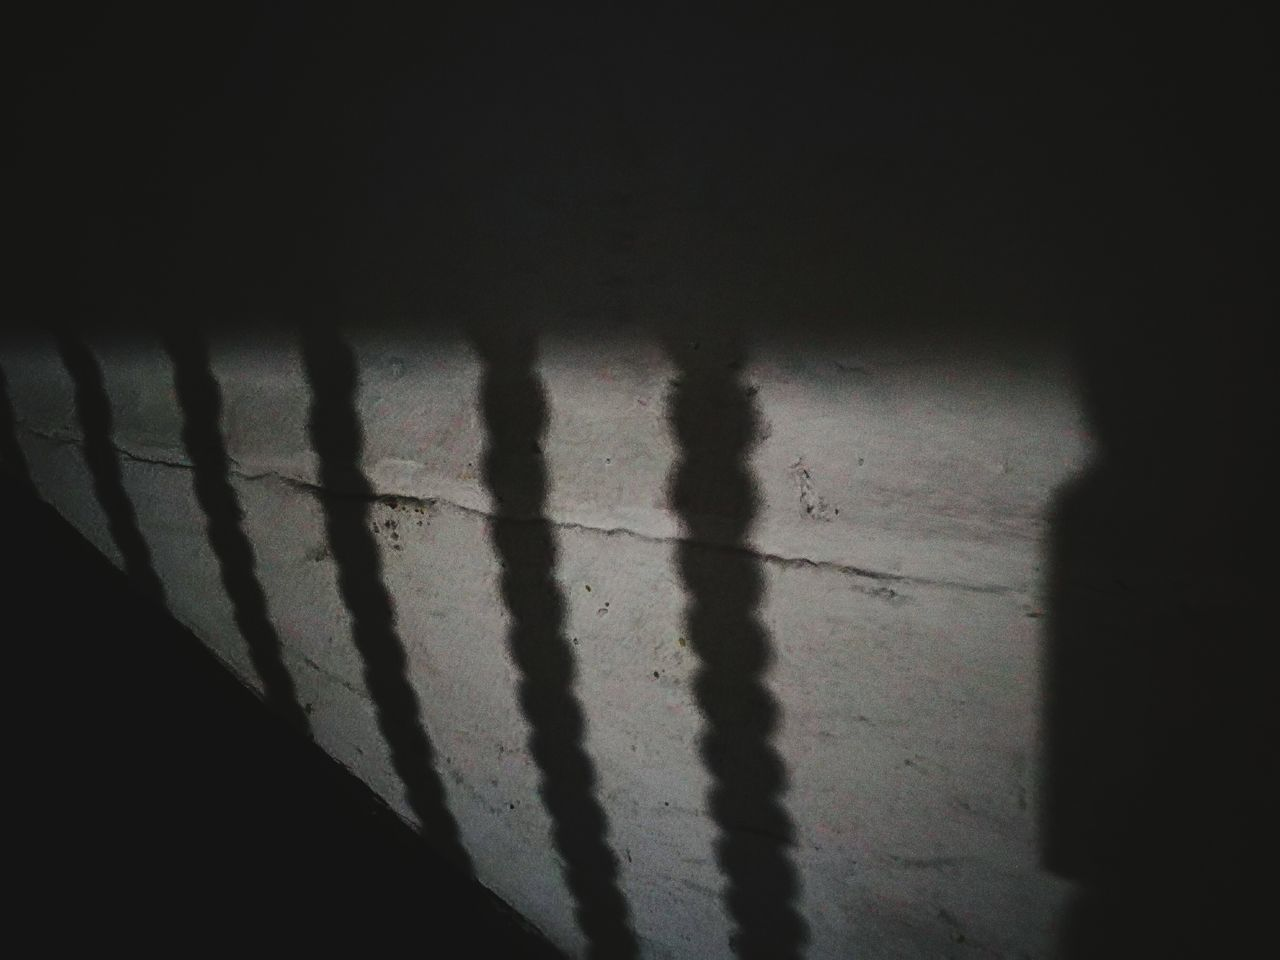 shadow, focus on shadow, no people, silhouette, indoors, sunlight, day, close-up